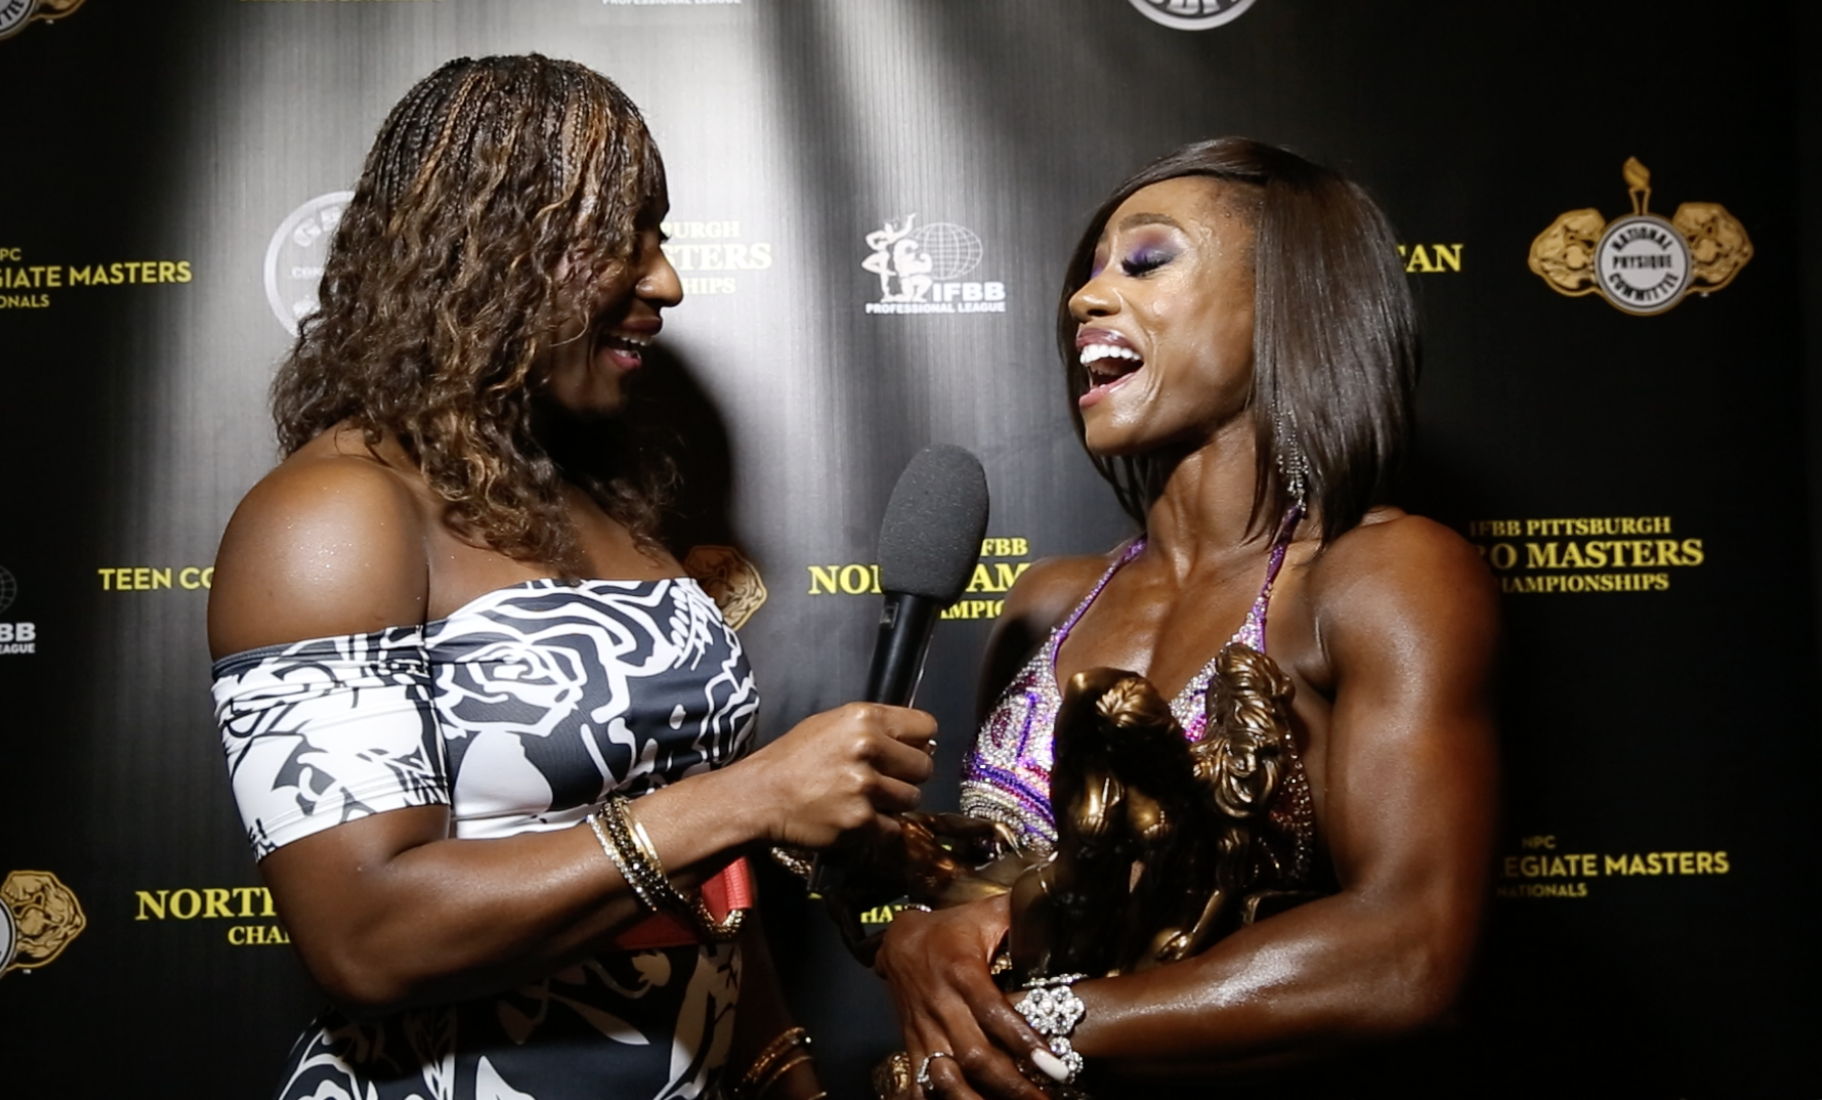 2017 NPC Teen, Collegiate & Masters Nationals Women's Figure Winner Interviews (5 Videos)